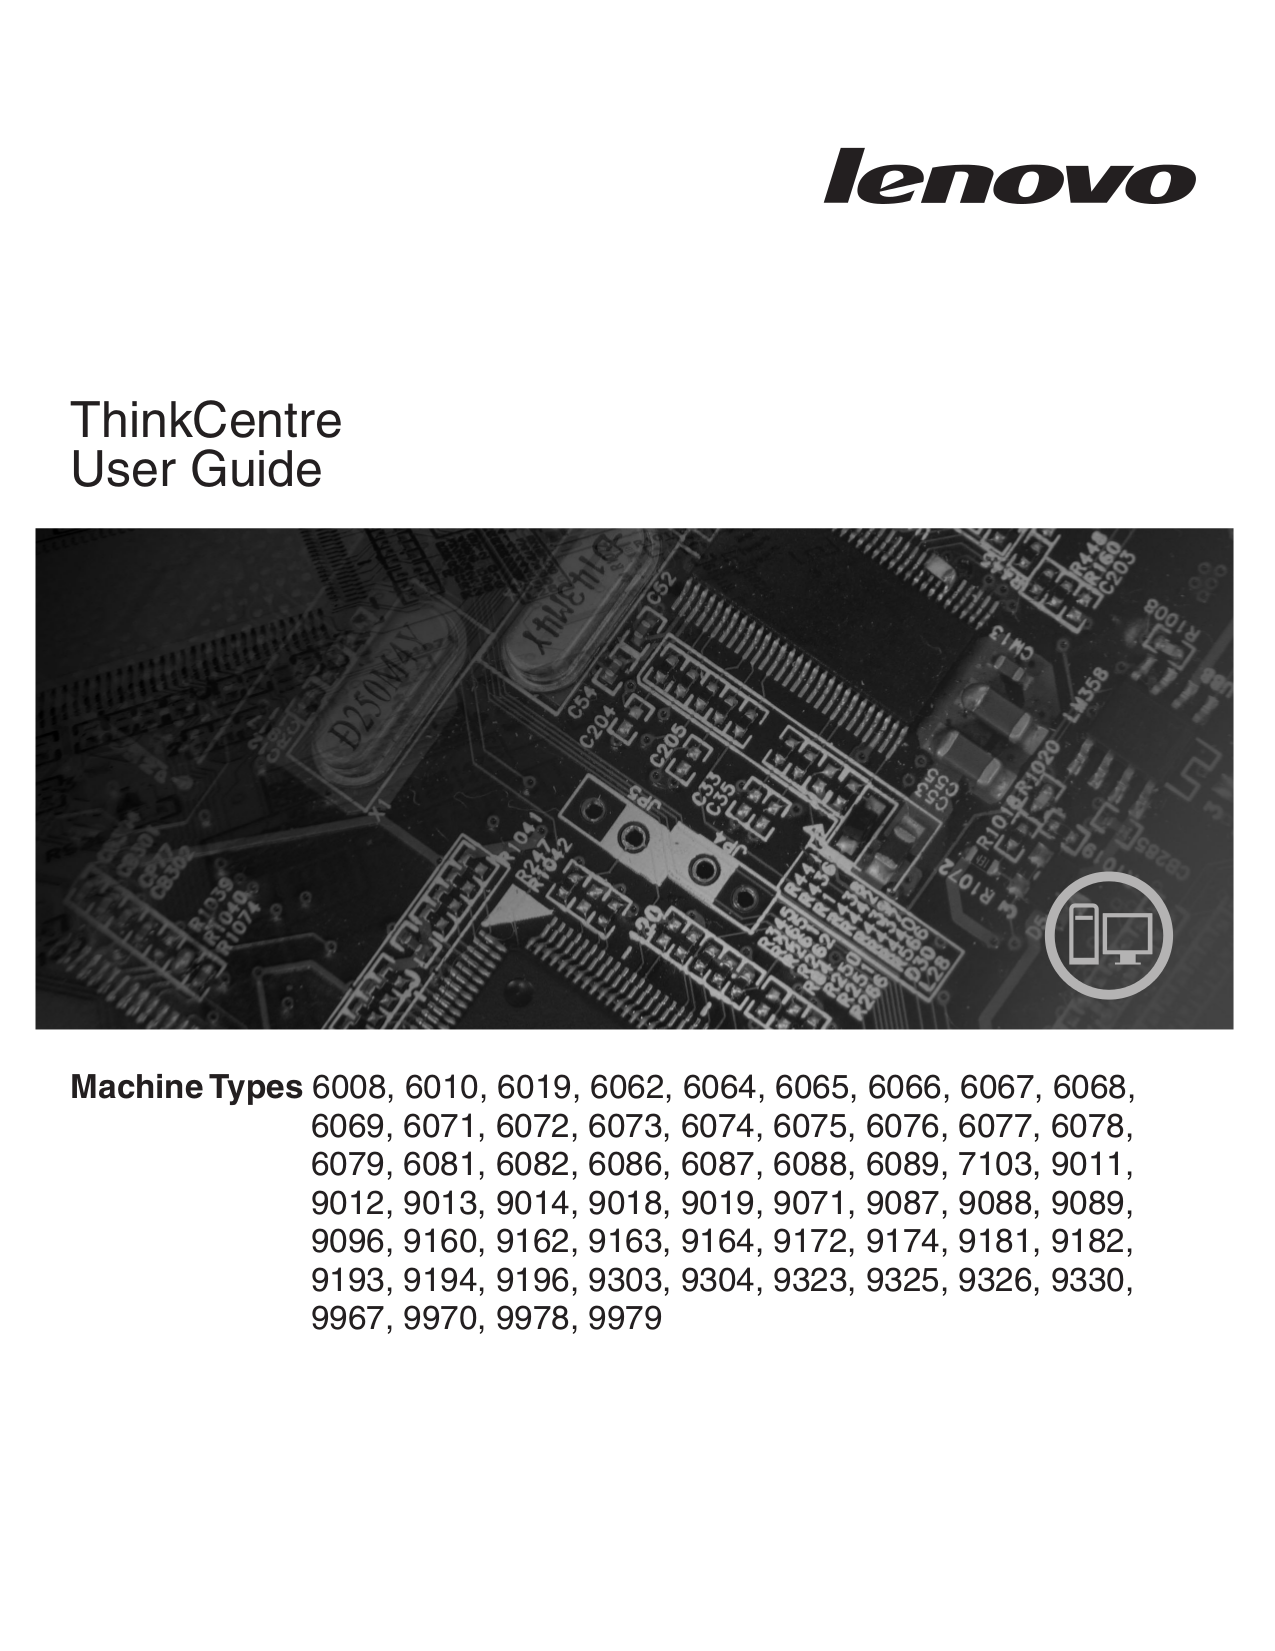 pdf for Lenovo Desktop ThinkCentre M57p 9071 manual